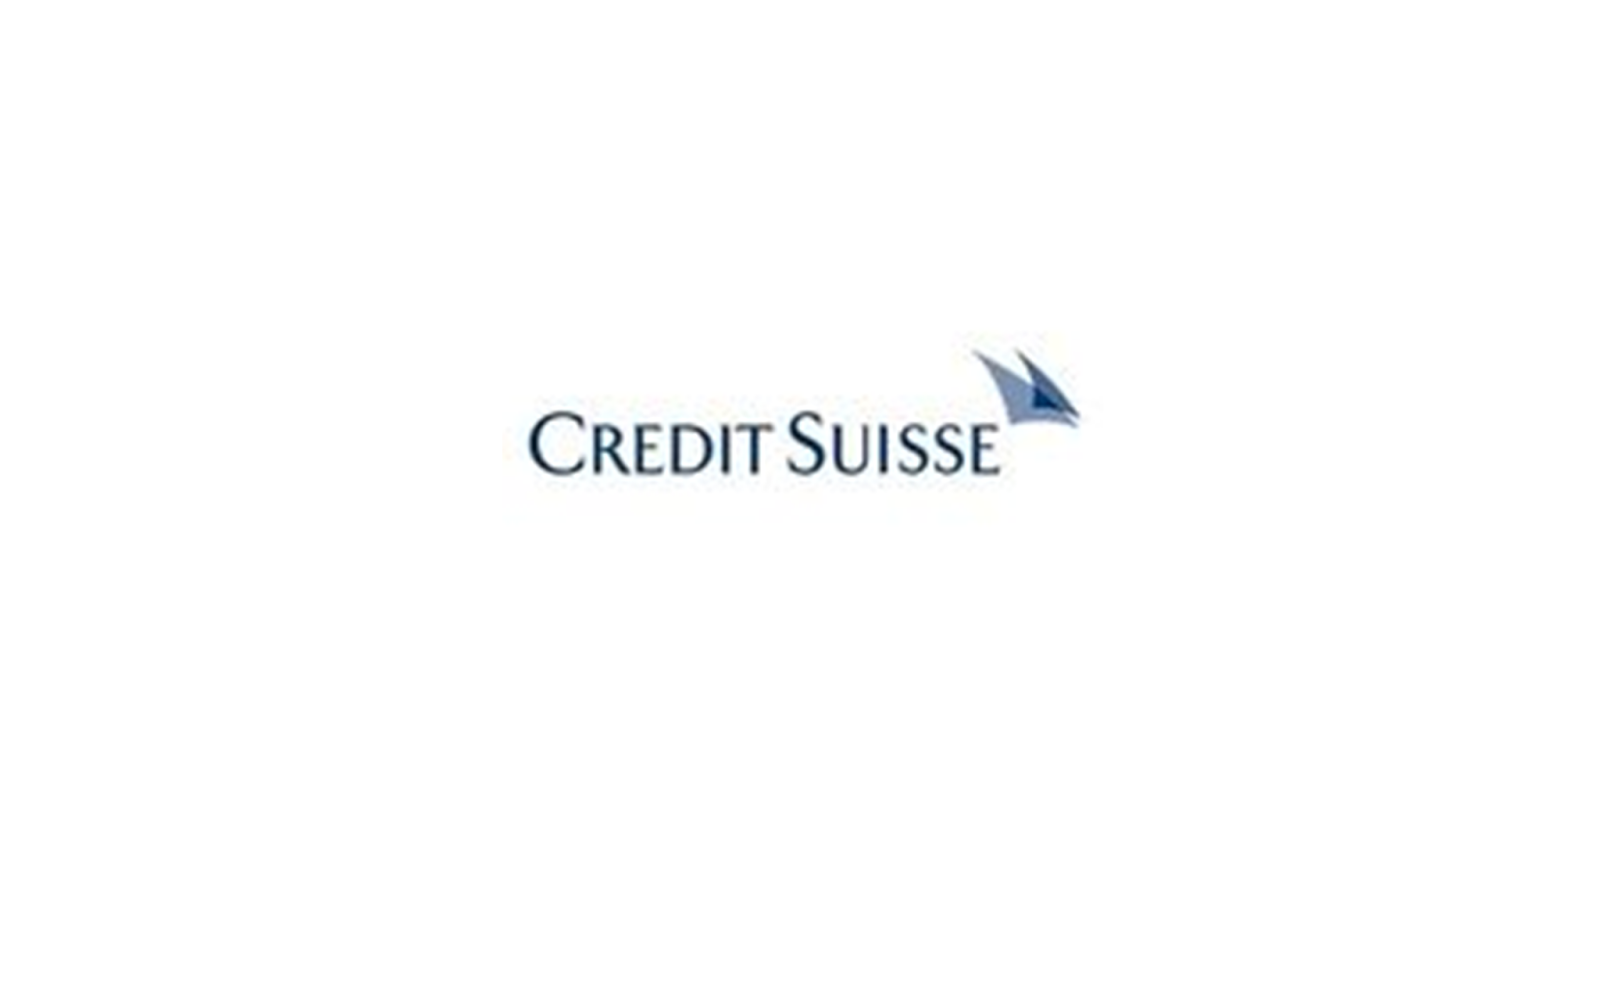 Credit Suisse - Private Banking Full Time Analyst Program (posted on 16  October 2017) - Logo Credit Suisse PNG